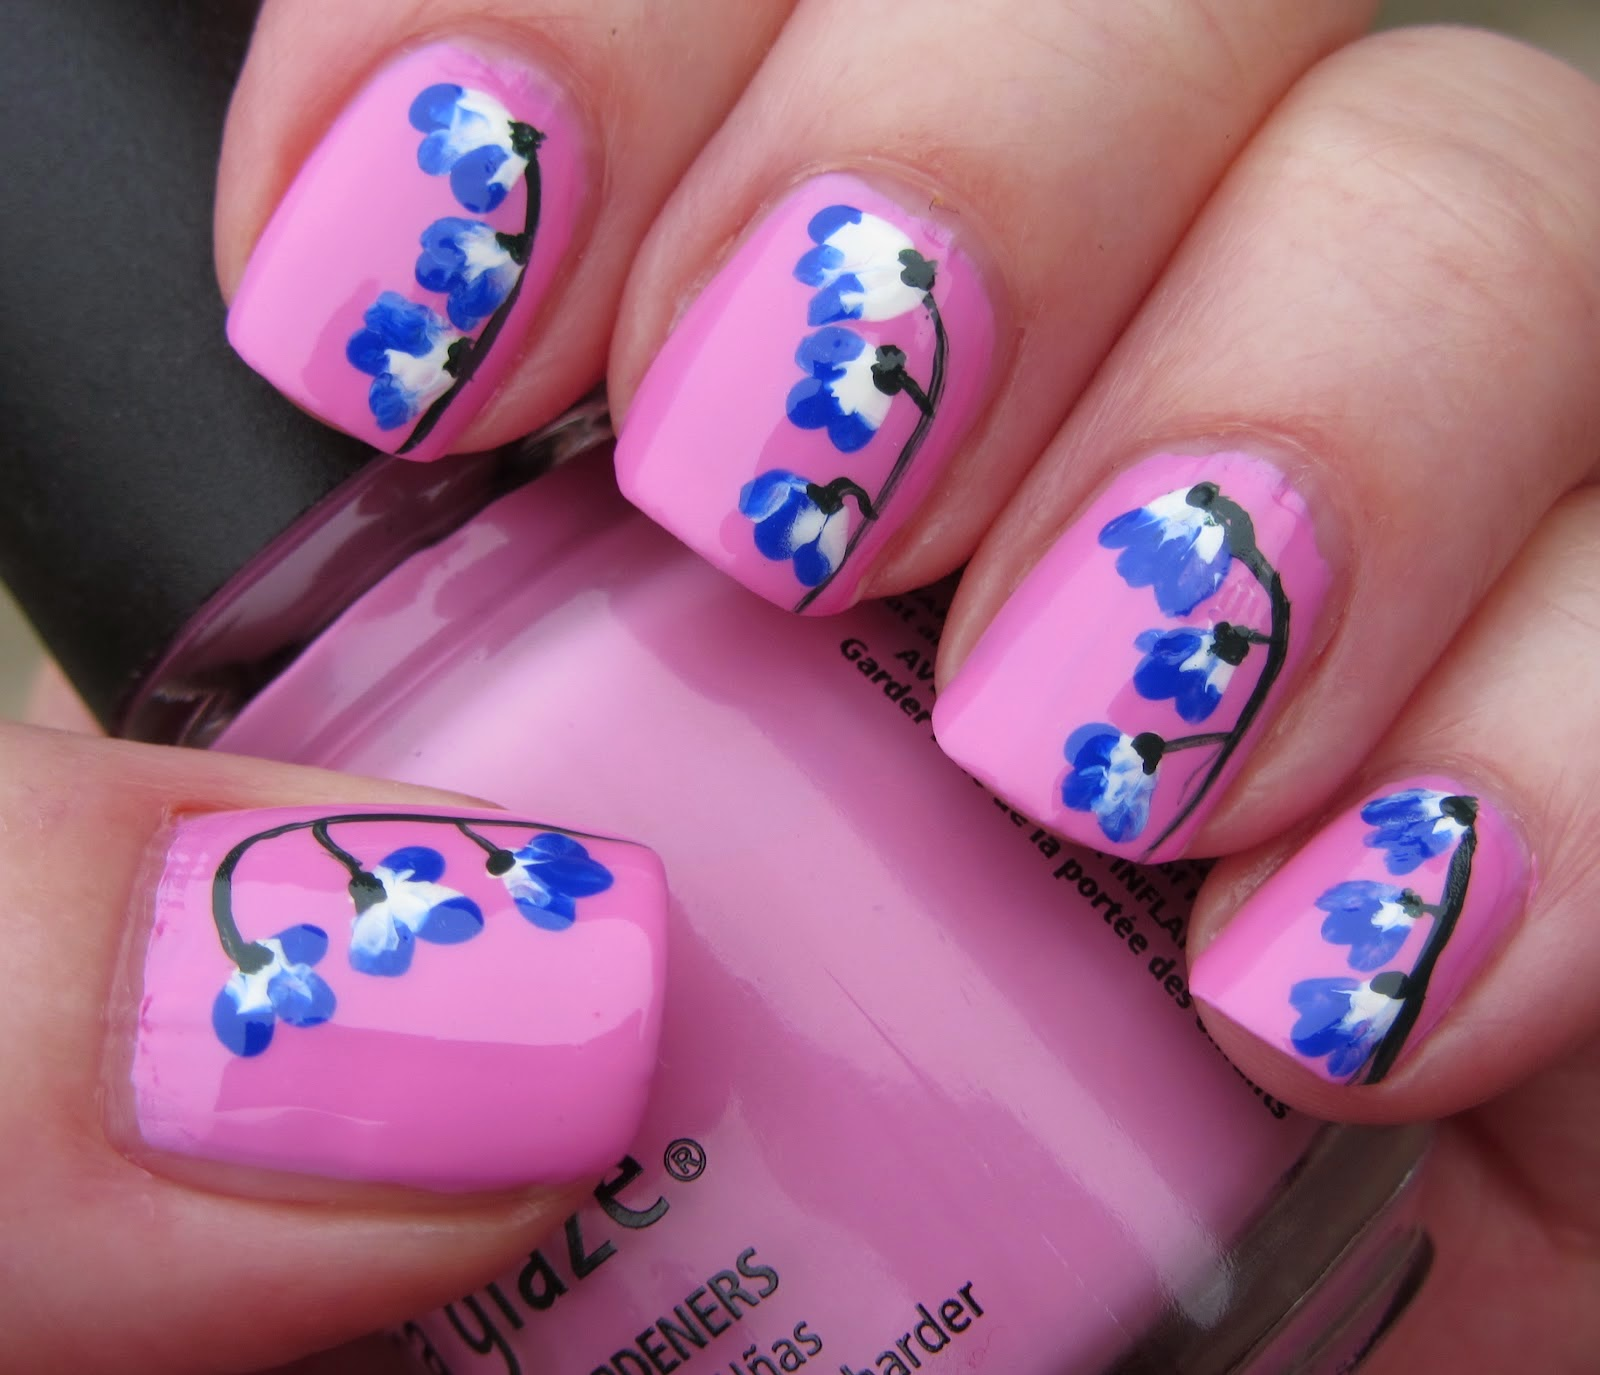 Nail Art Flowers|http://refreshrose.blogspot.com/